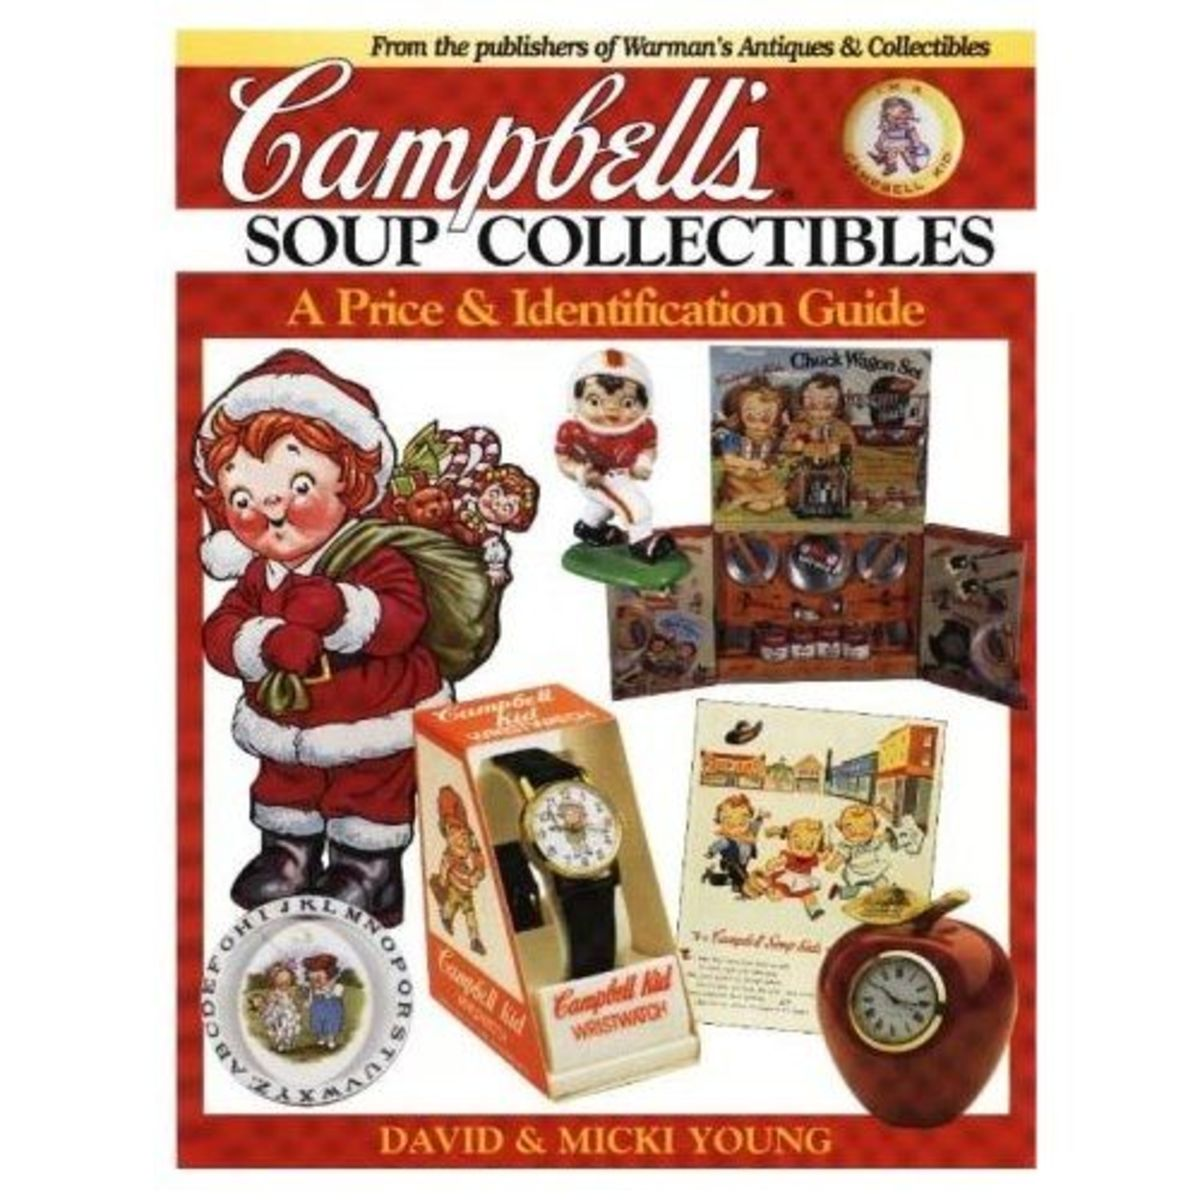 Campbell's Soup Collectibles from A to Z: A Price and Identification Guide Paperback available on Amazon